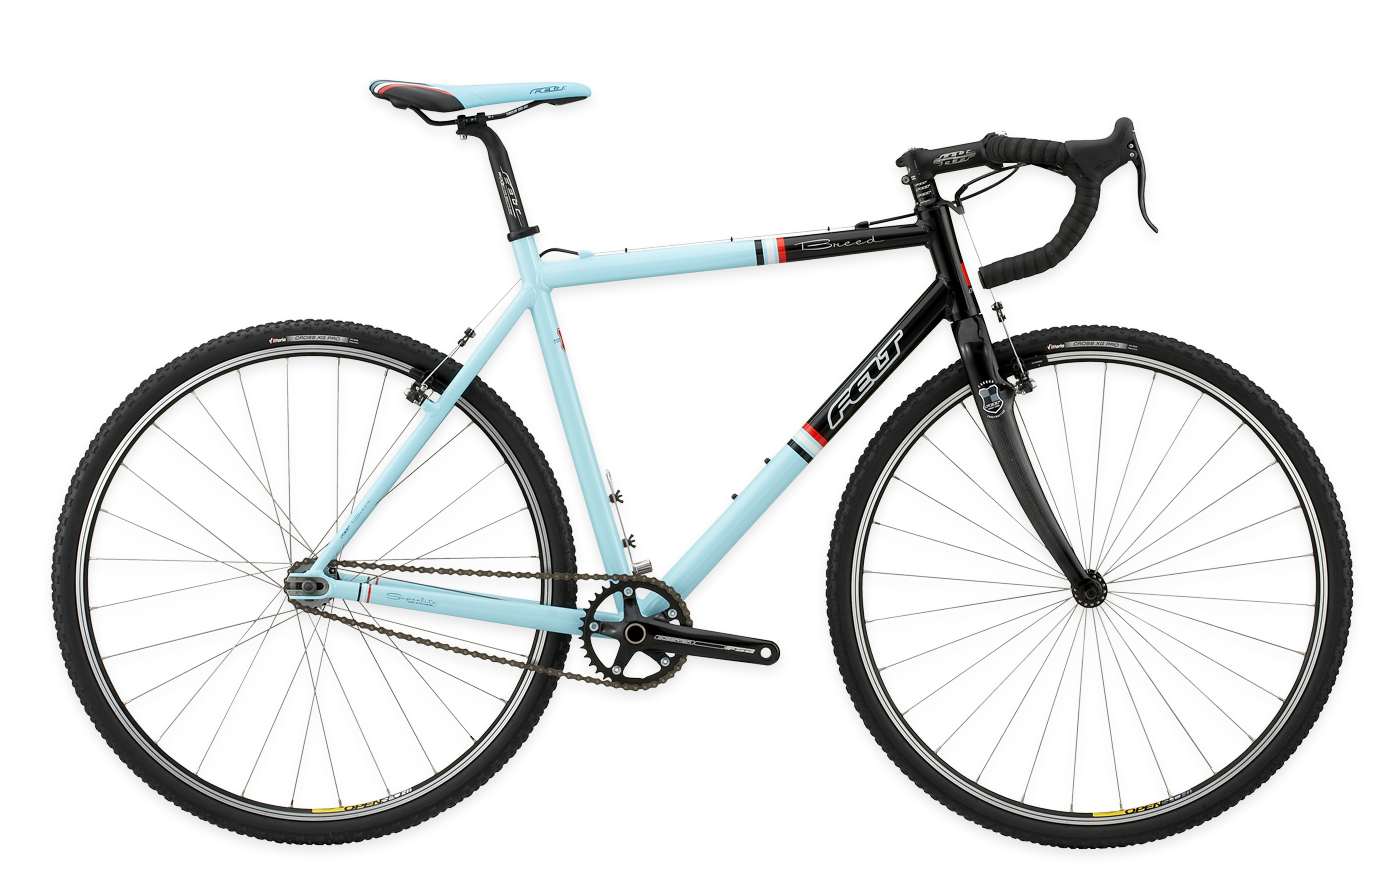 Cycles PNG image download